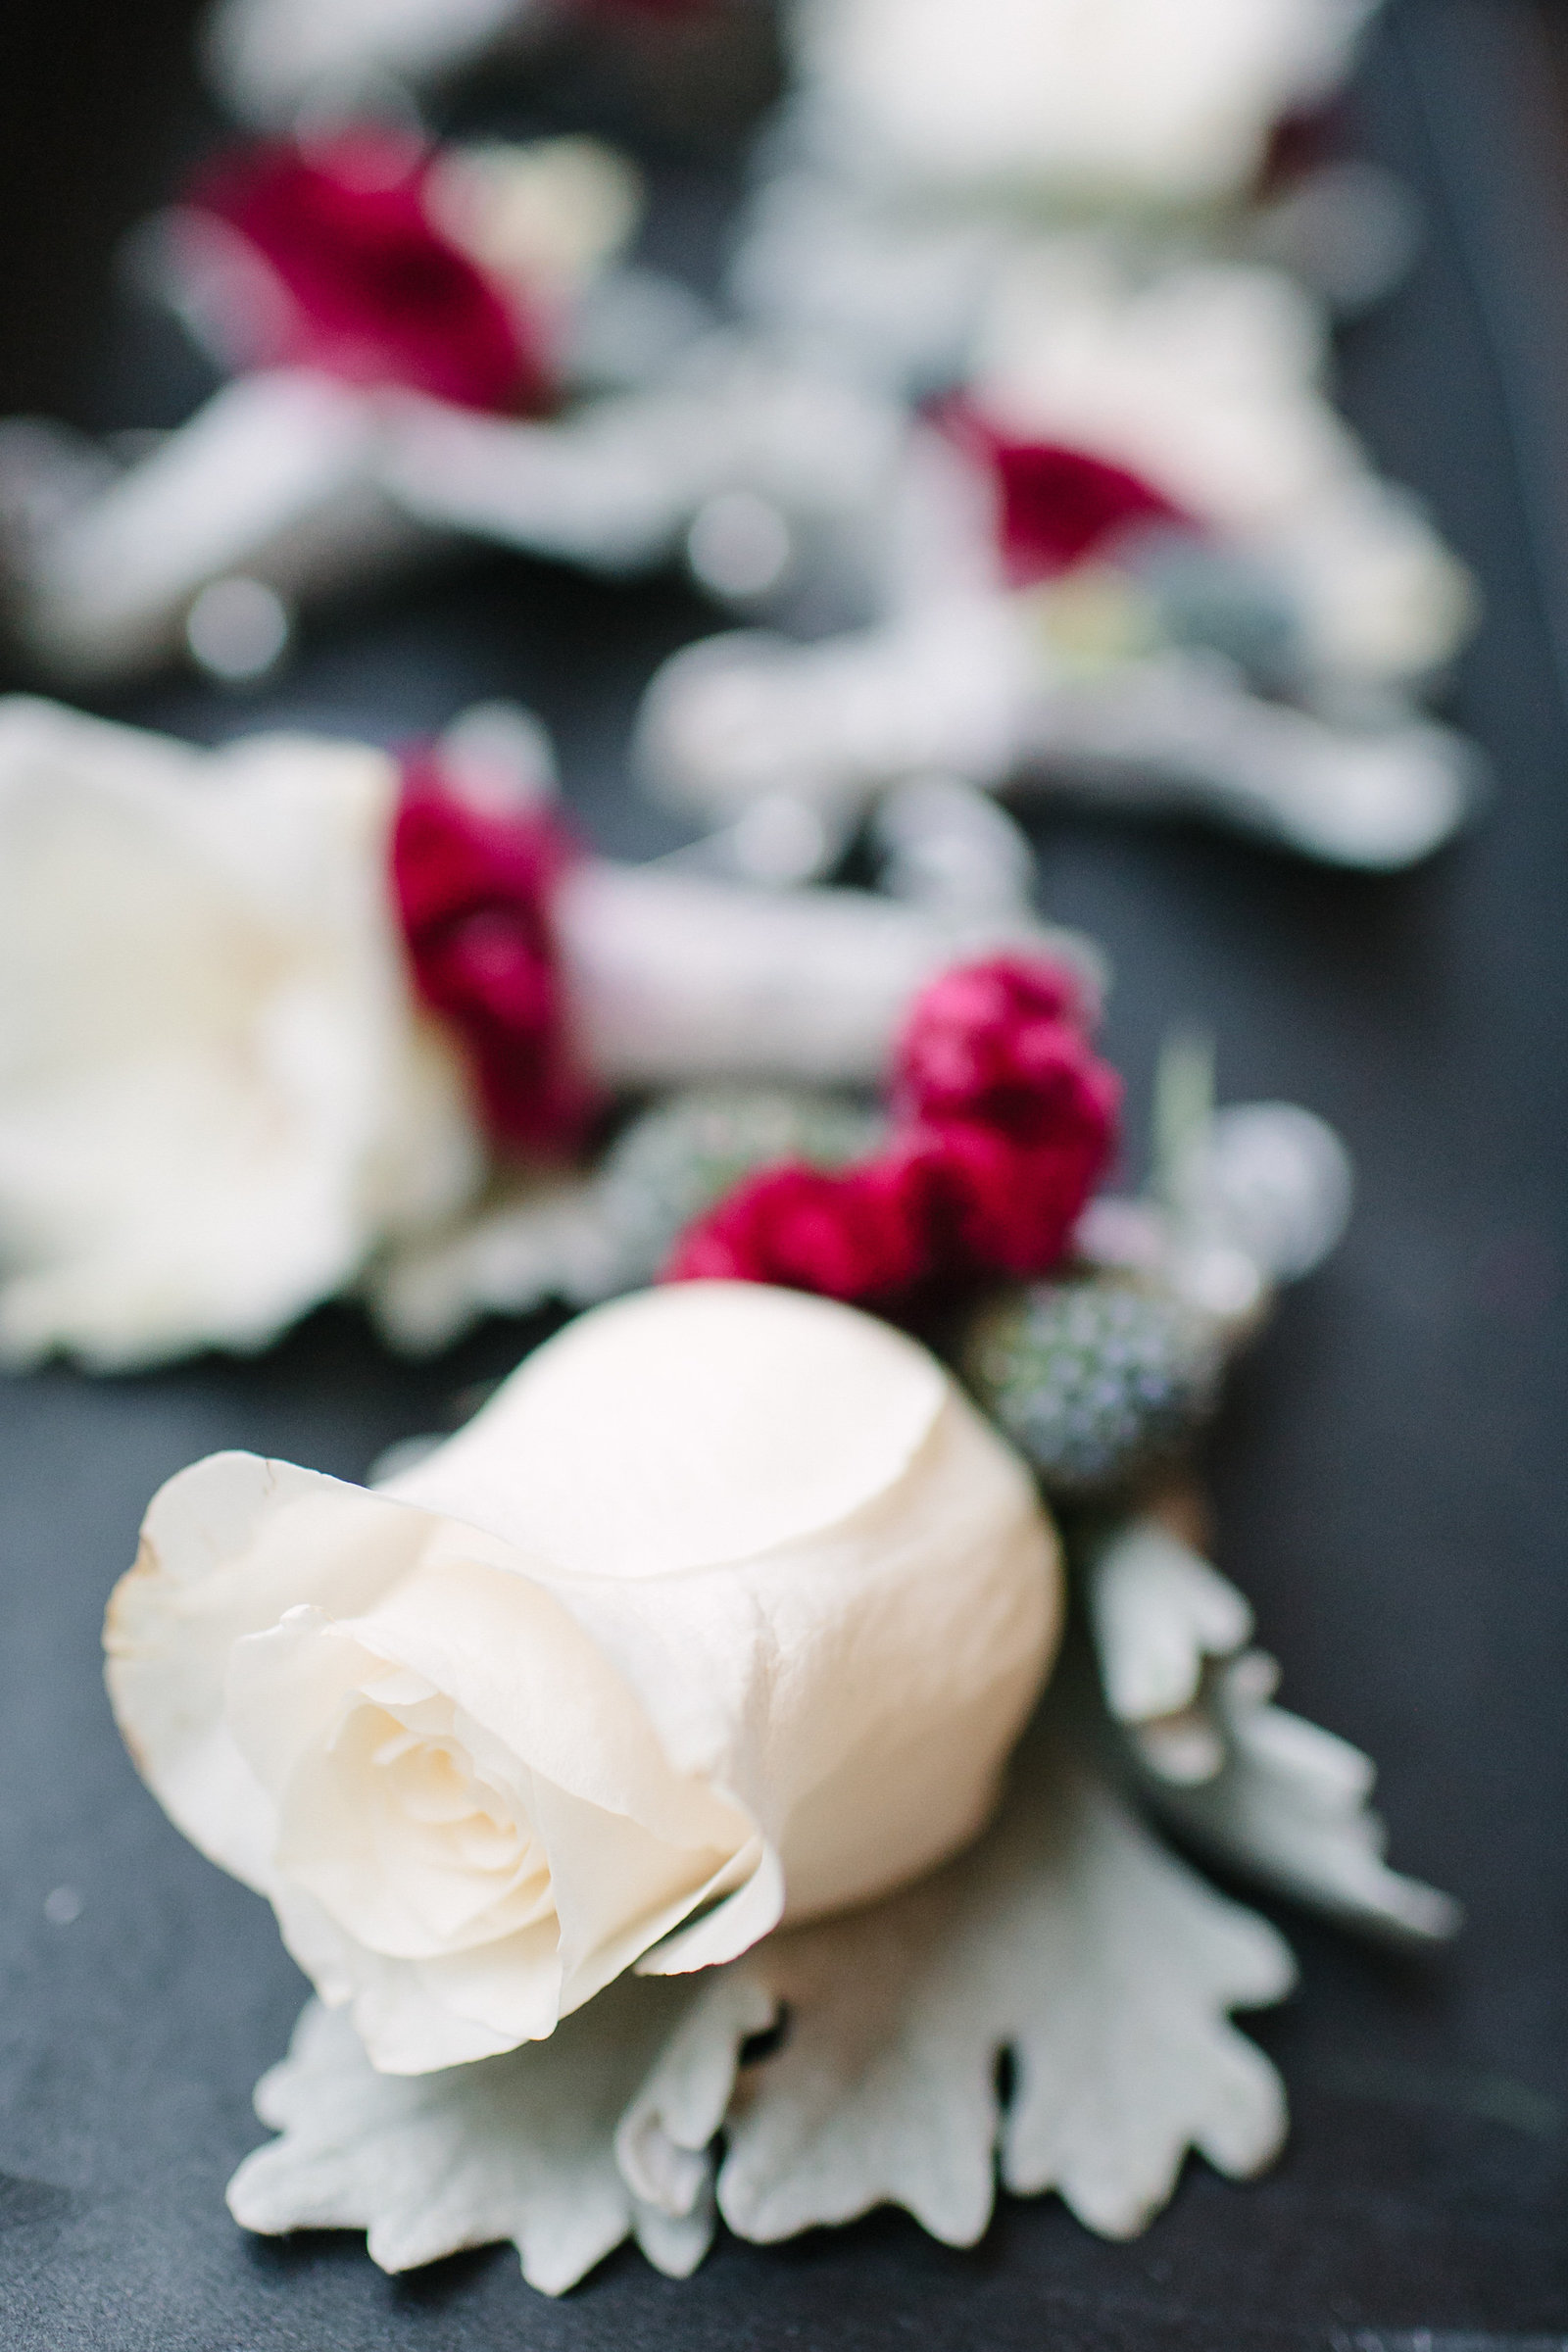 Boutonniere Wedding - White Roses with Red